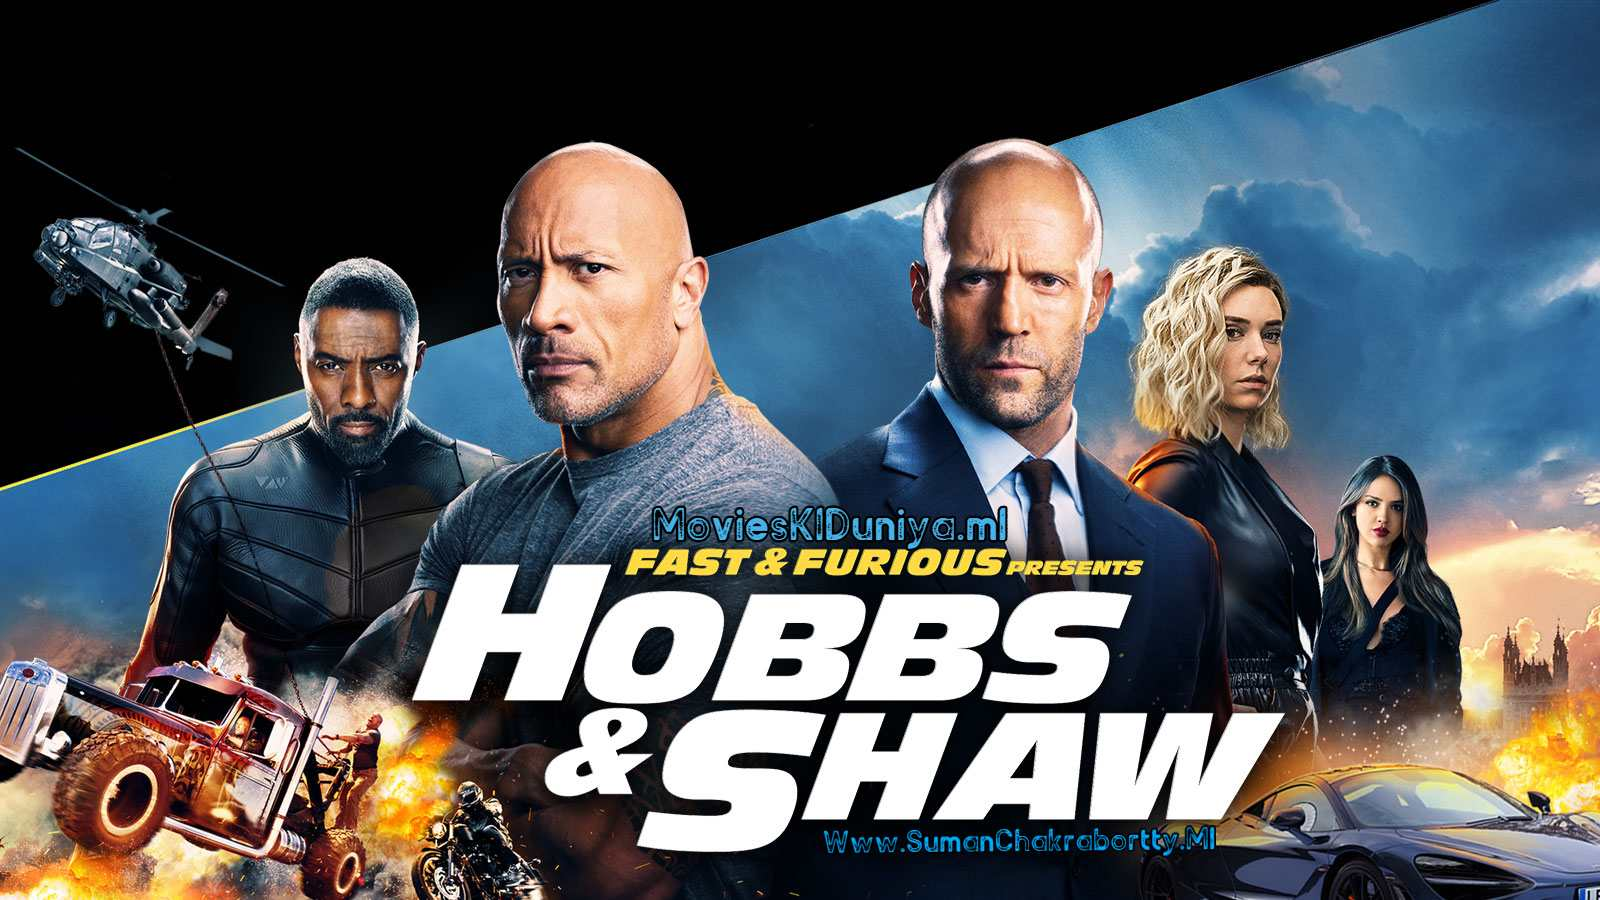 Fast & Furious Presents: Hobbs & Shaw Dual Audio Movie Download In 720p HD